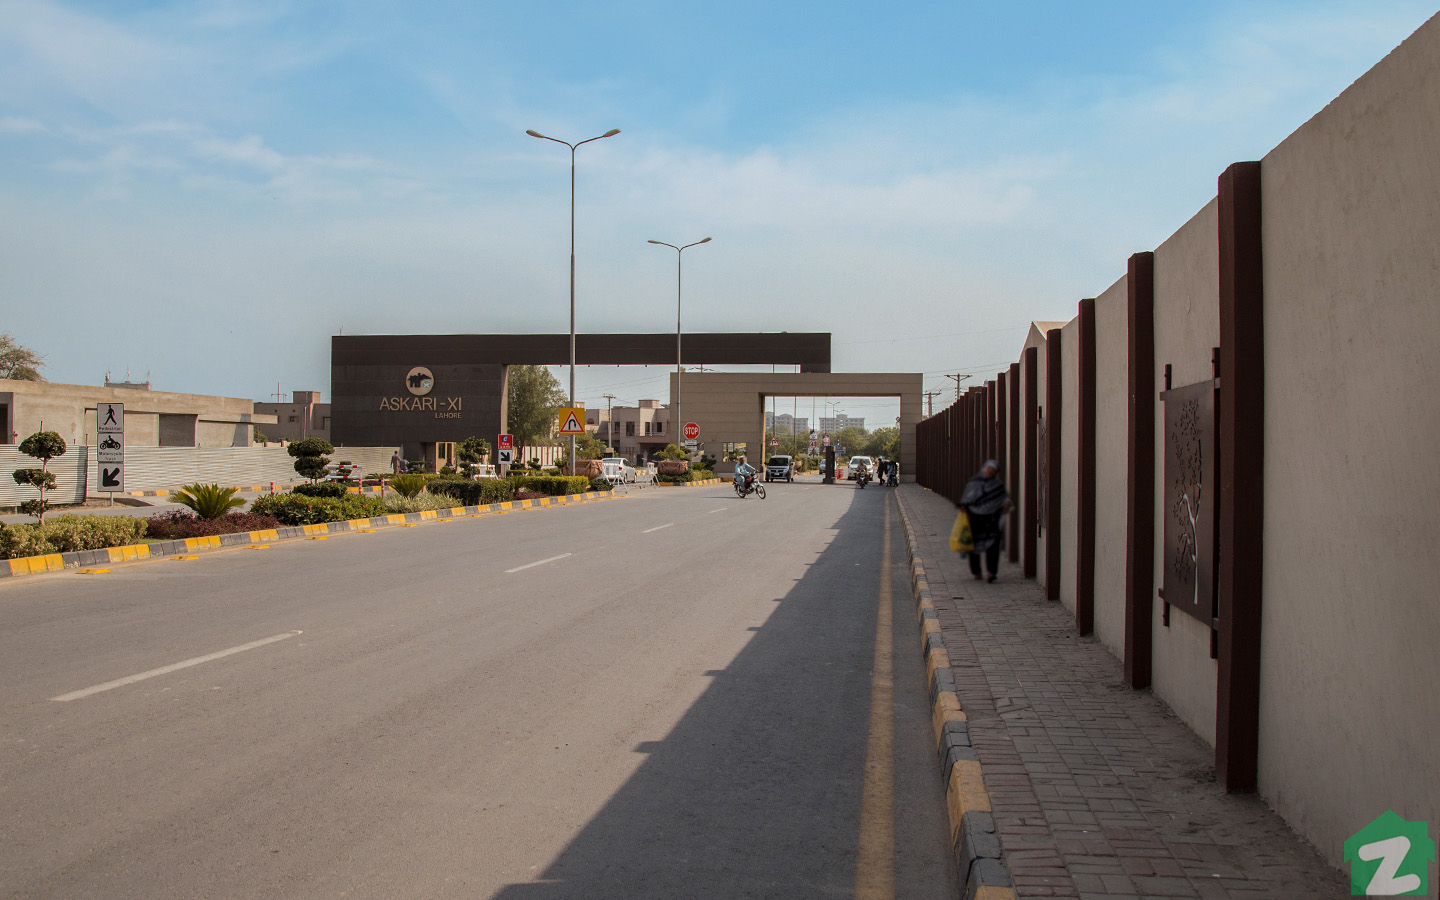 Askari 11 Lahore is a gated community which offers 24/7 security to its residents.